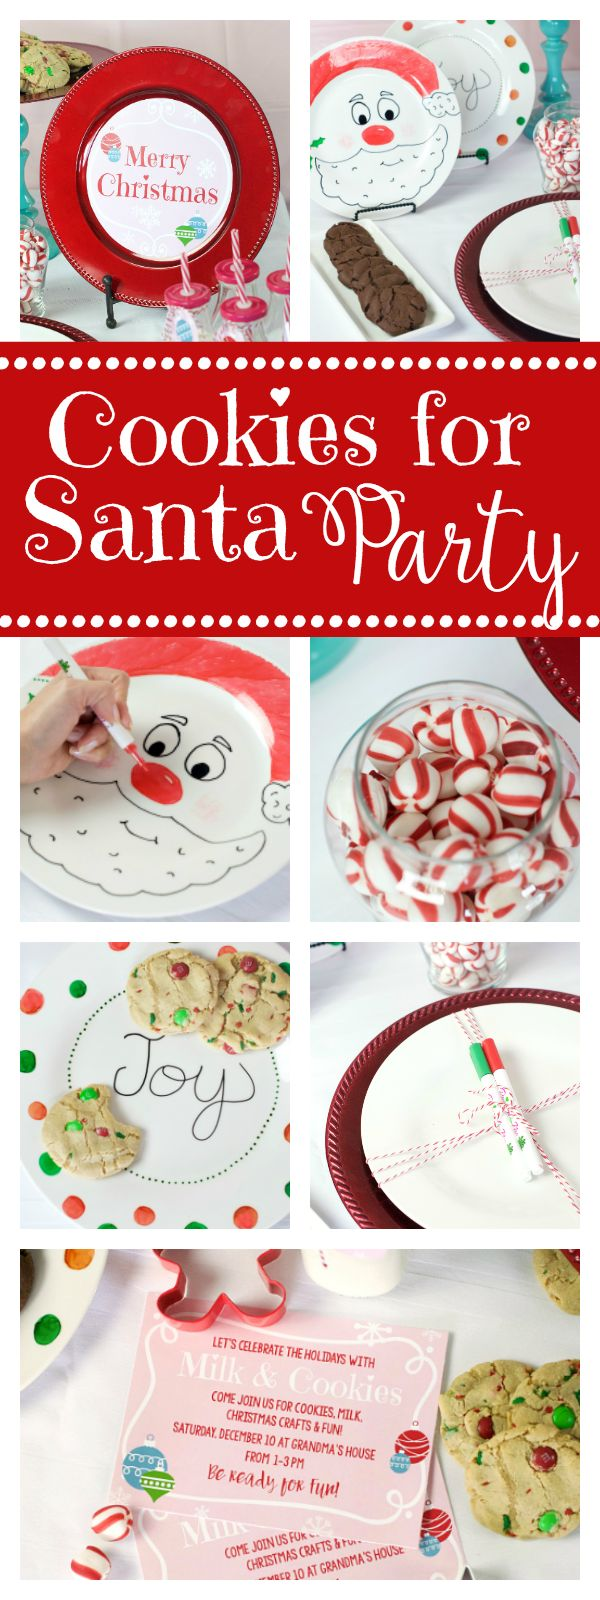 Worksheet. 643 best Real Christmas images on Pinterest  Holiday ideas